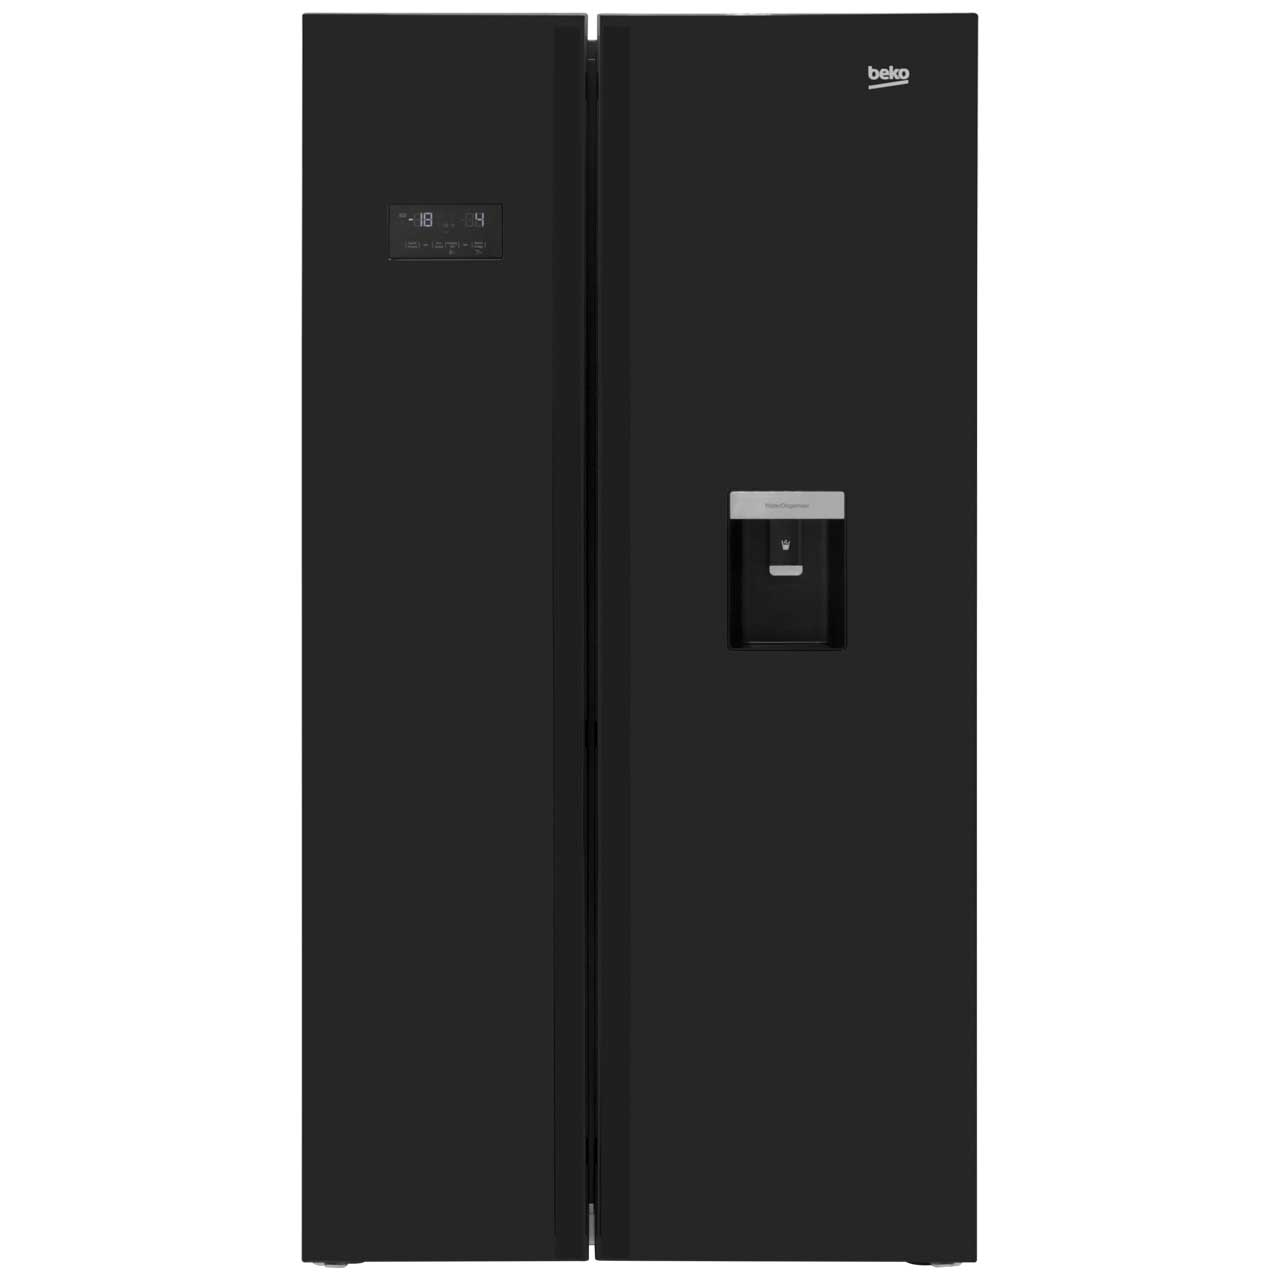 Beko ASDL251B American Fridge Freezer - Black